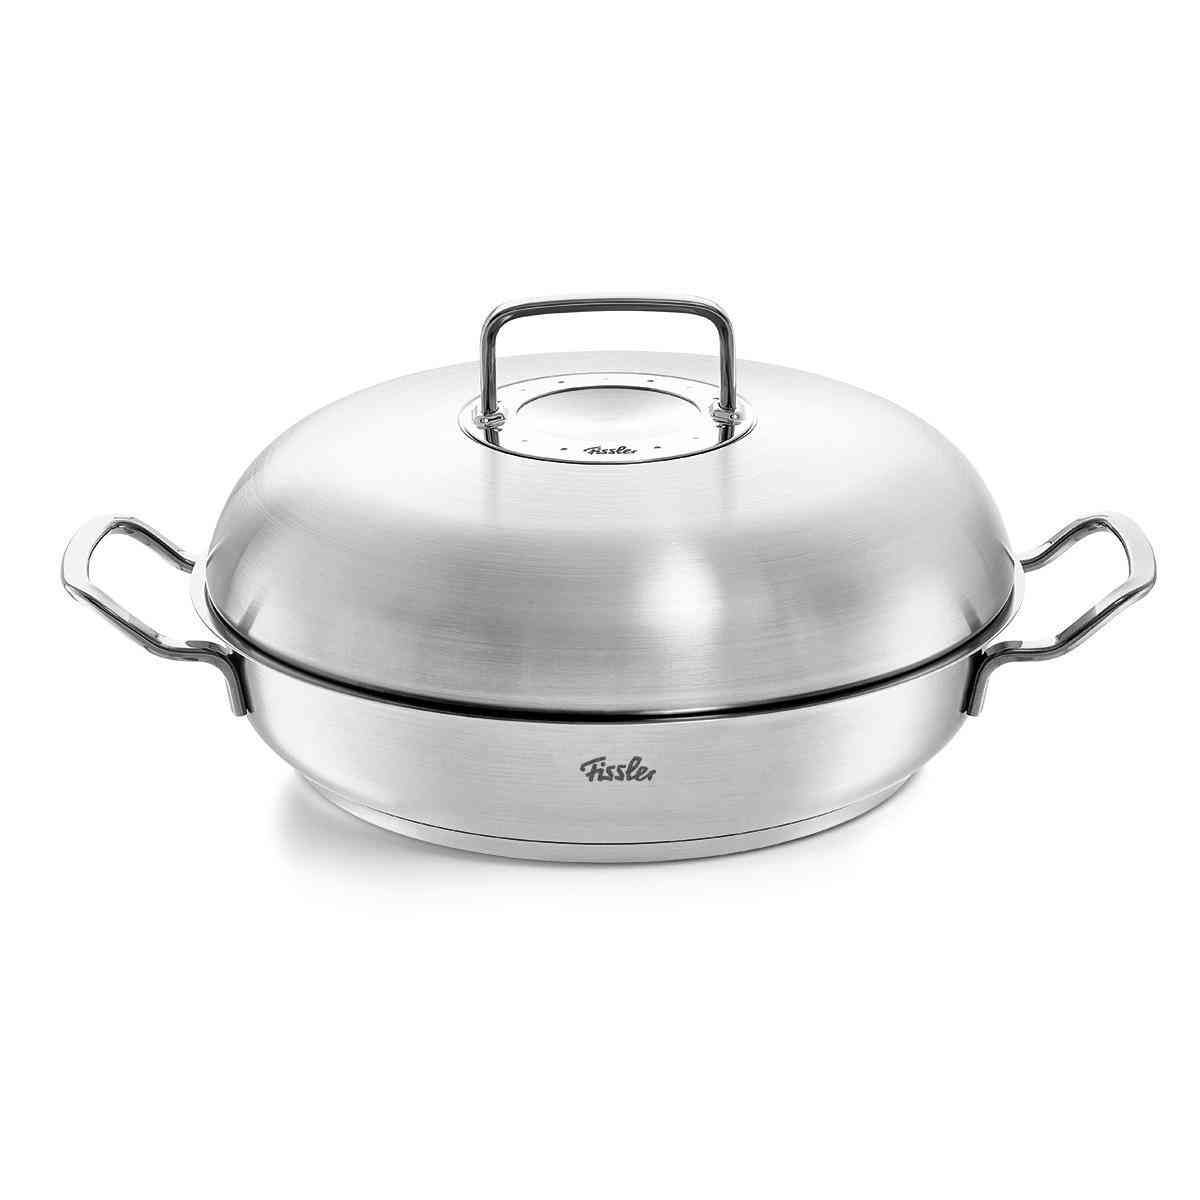 pure-profi collection Roasting/ Serving Pan with Domed Lid, 11 Inch